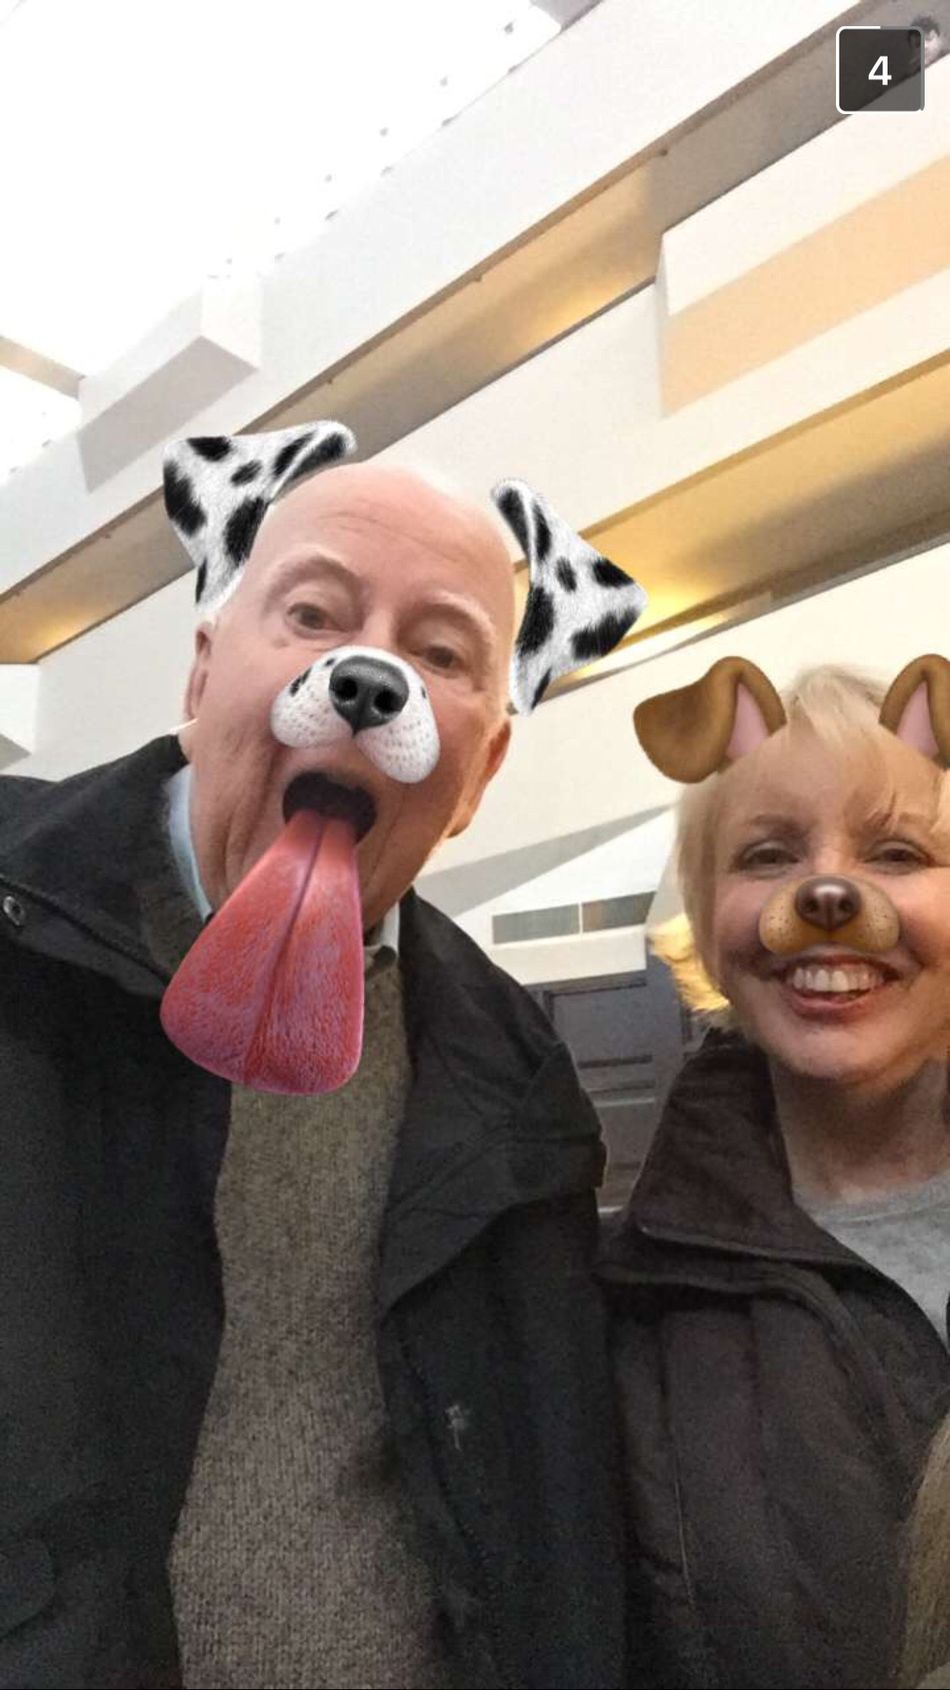 Older couple enjoys snapchat Two People Social Media Older Couple First Eyeem Photo